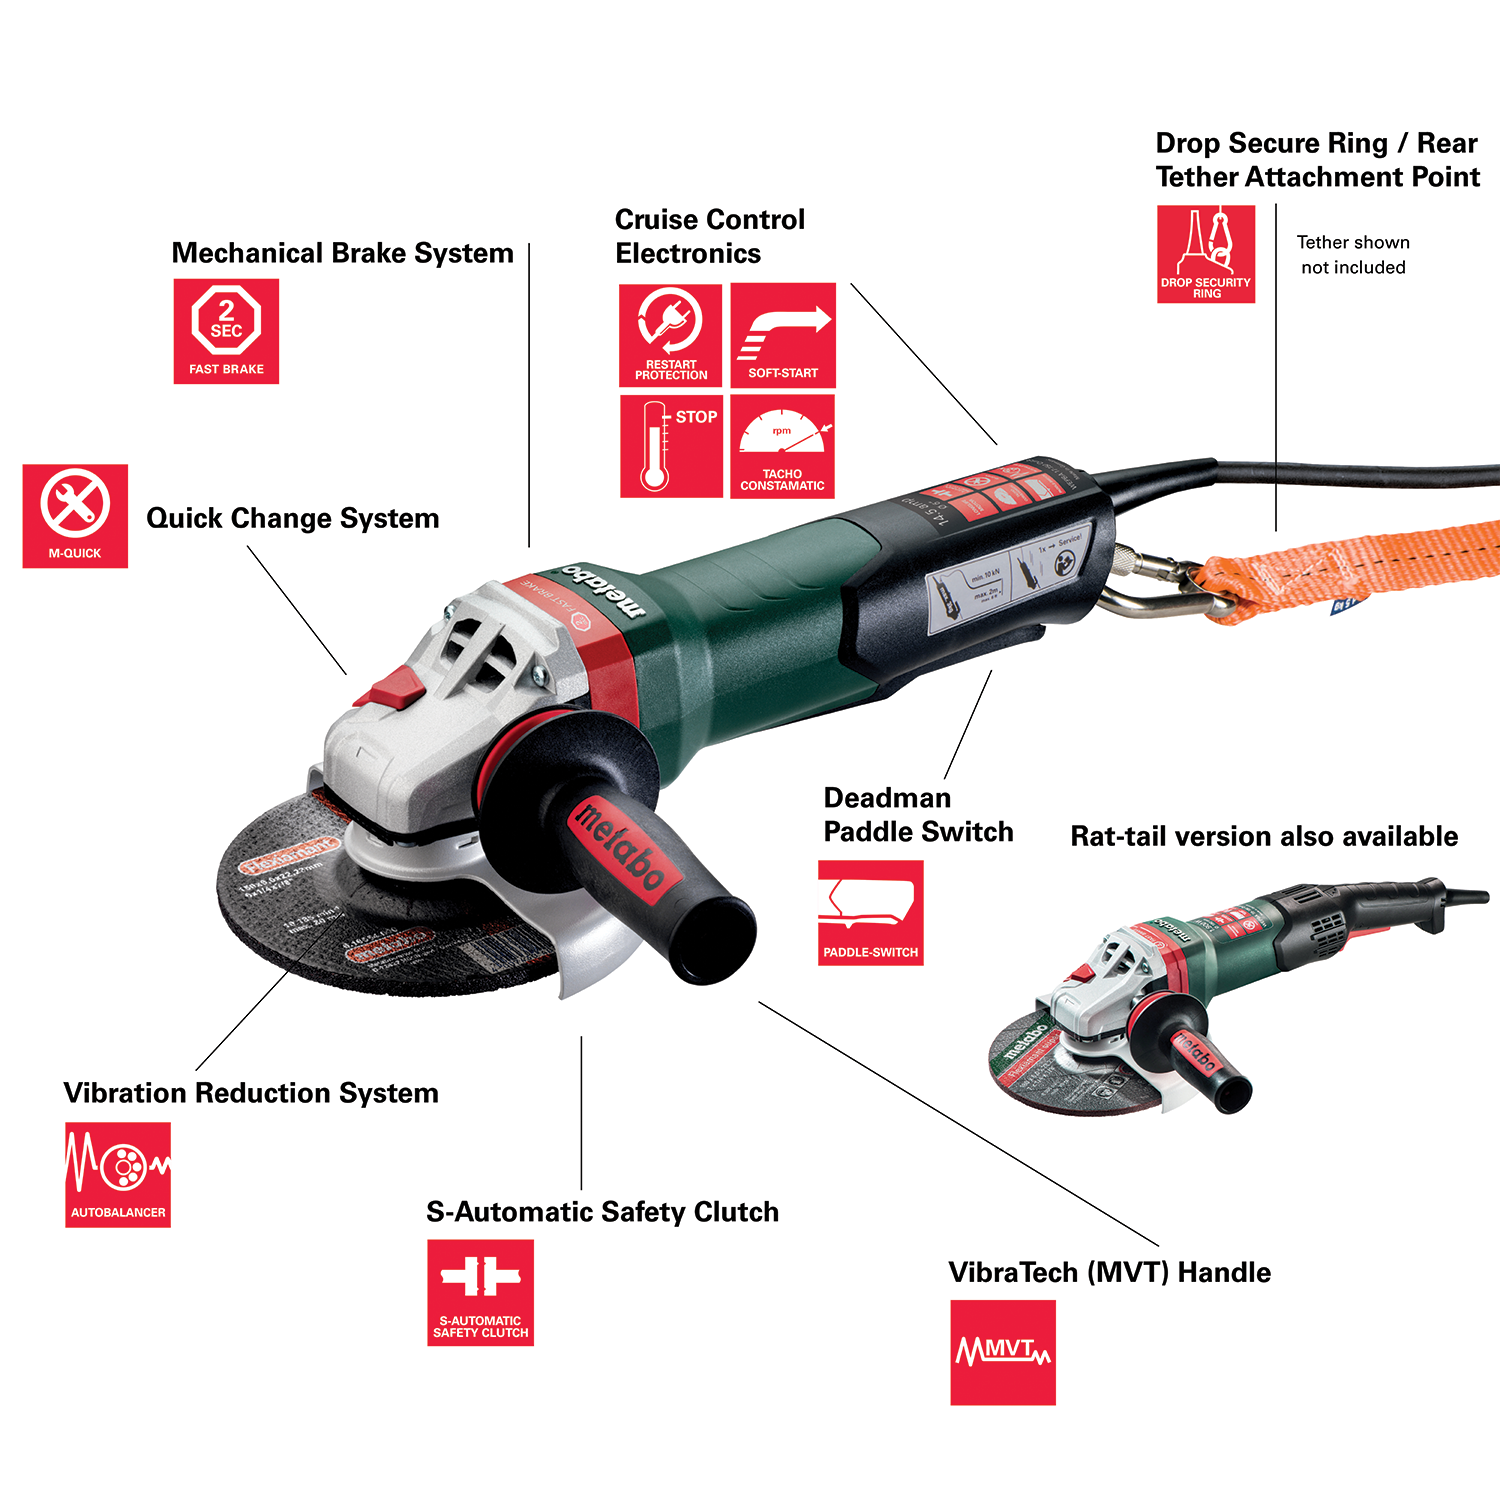 Power Tool Safety | Metabo Power Tools